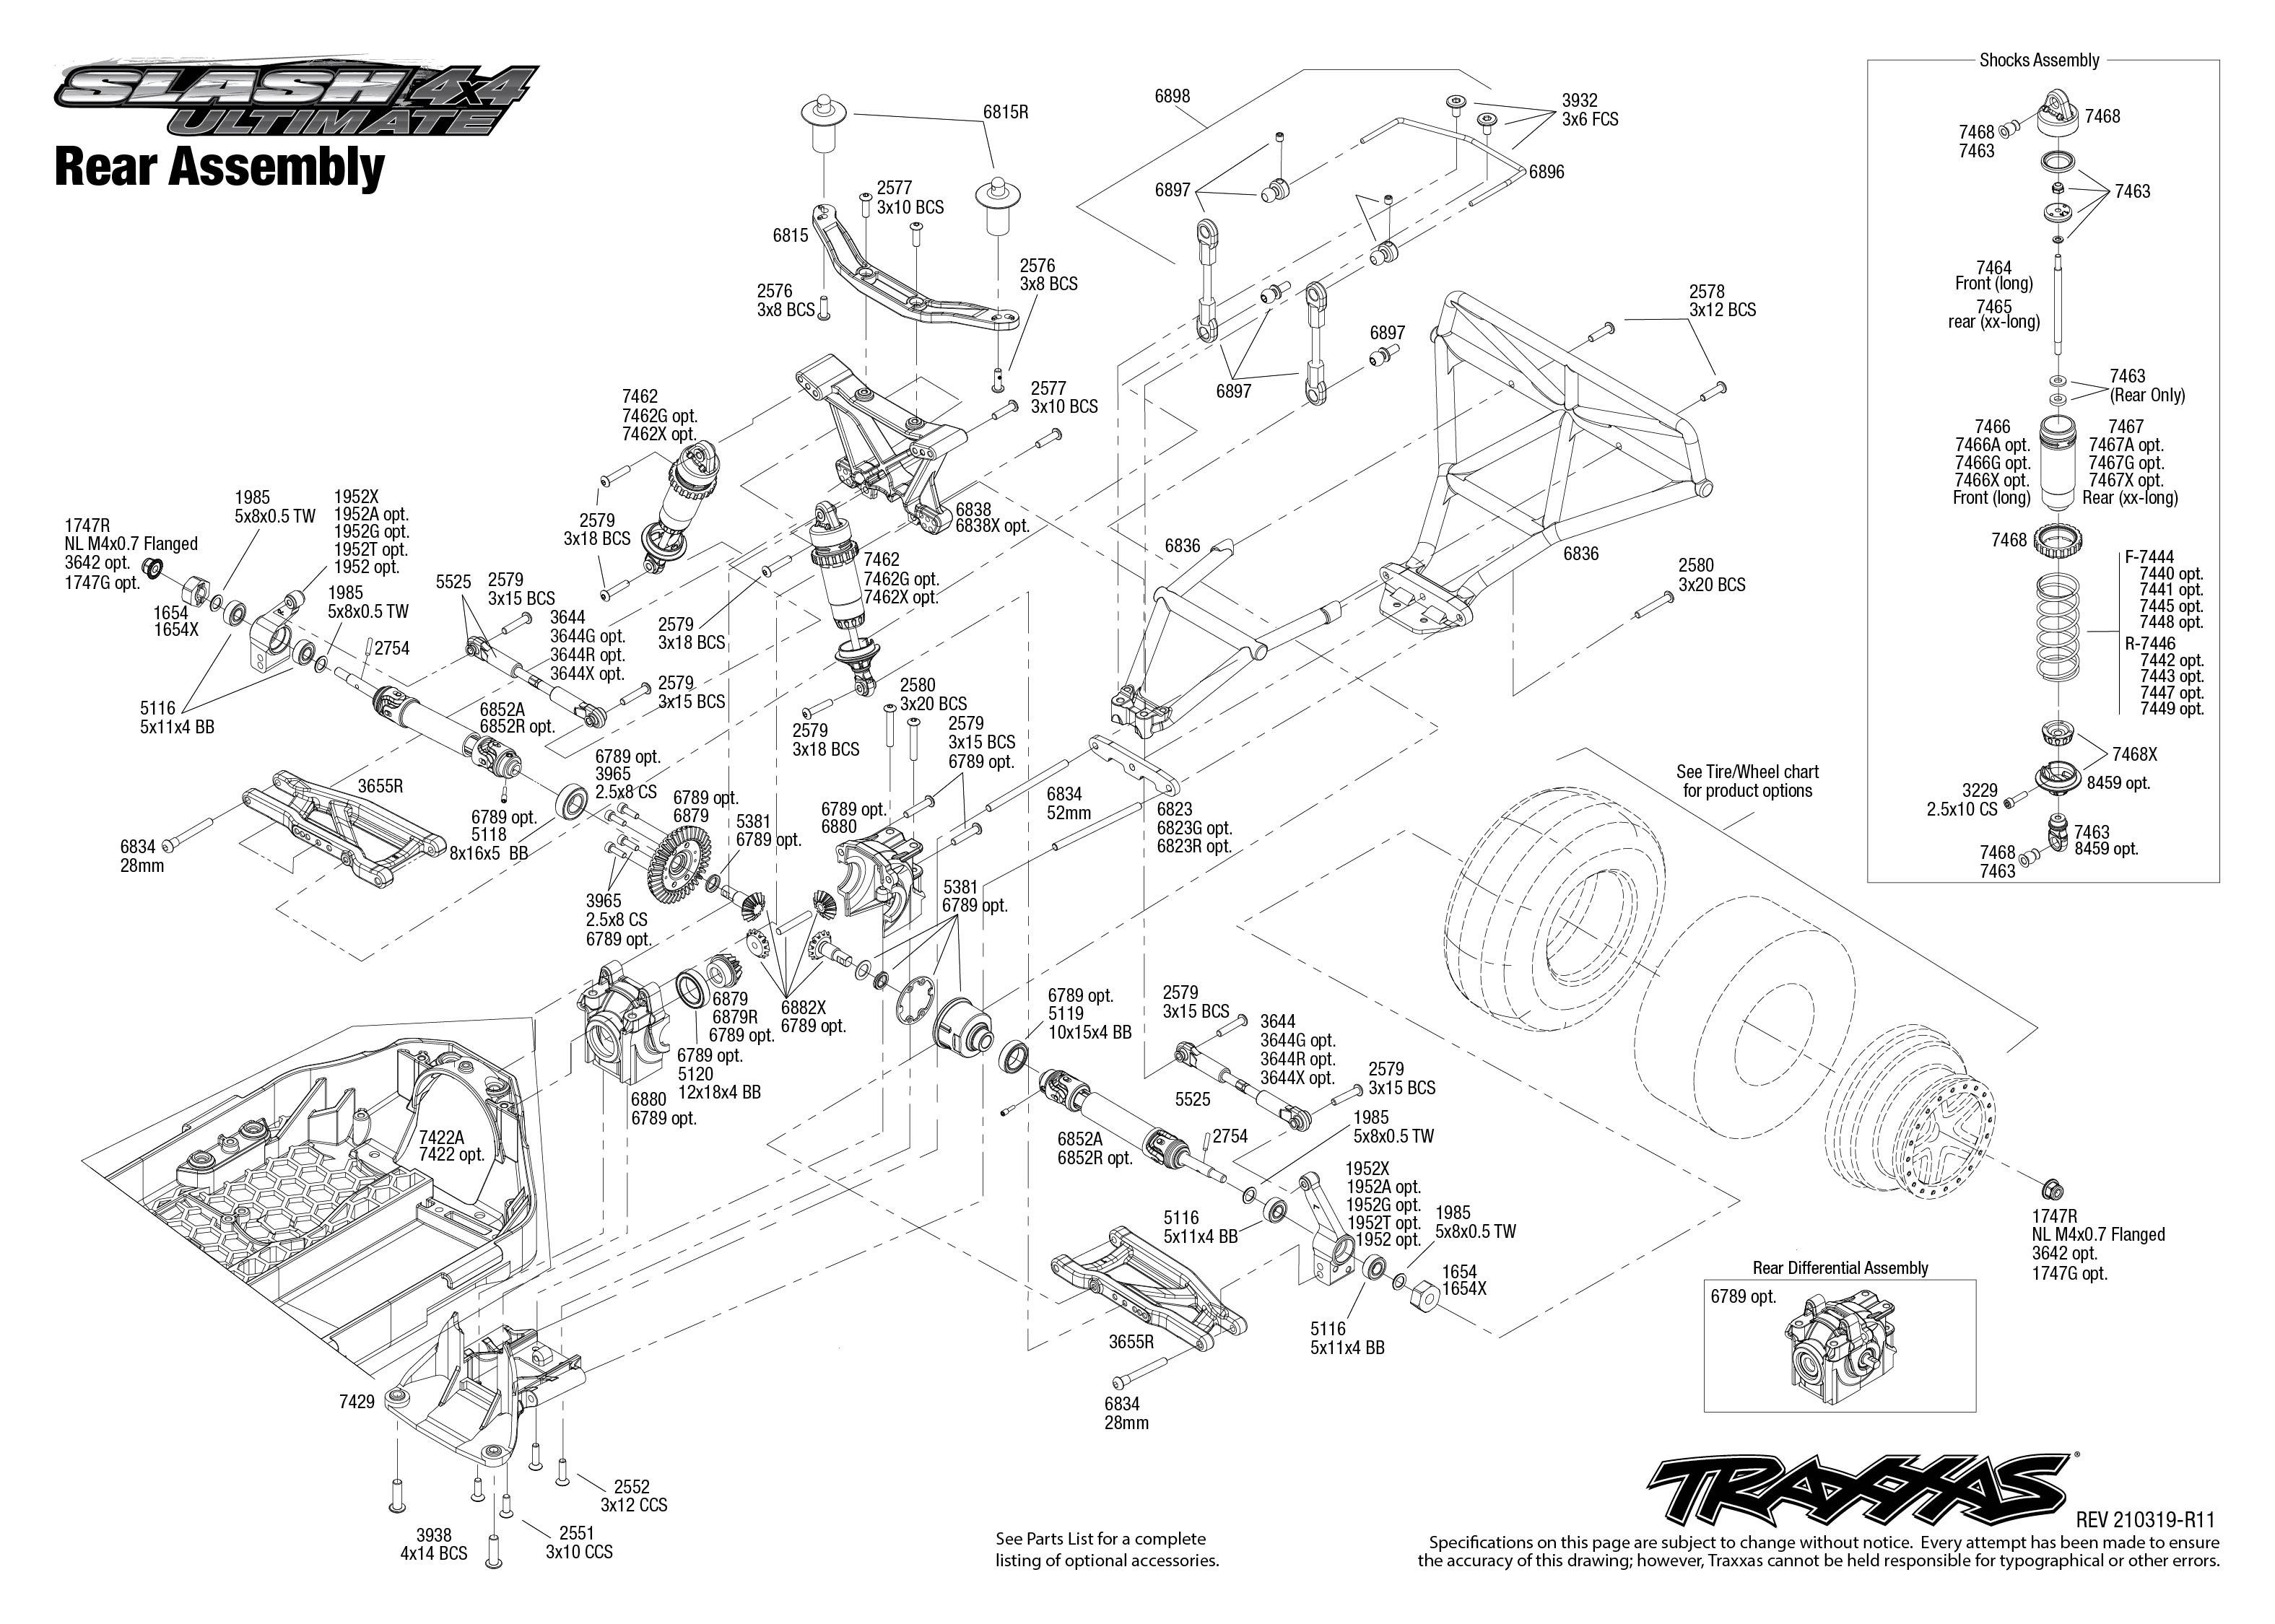 Slash 4X4 Ultimate (68077-4) Rear Assembly Exploded View